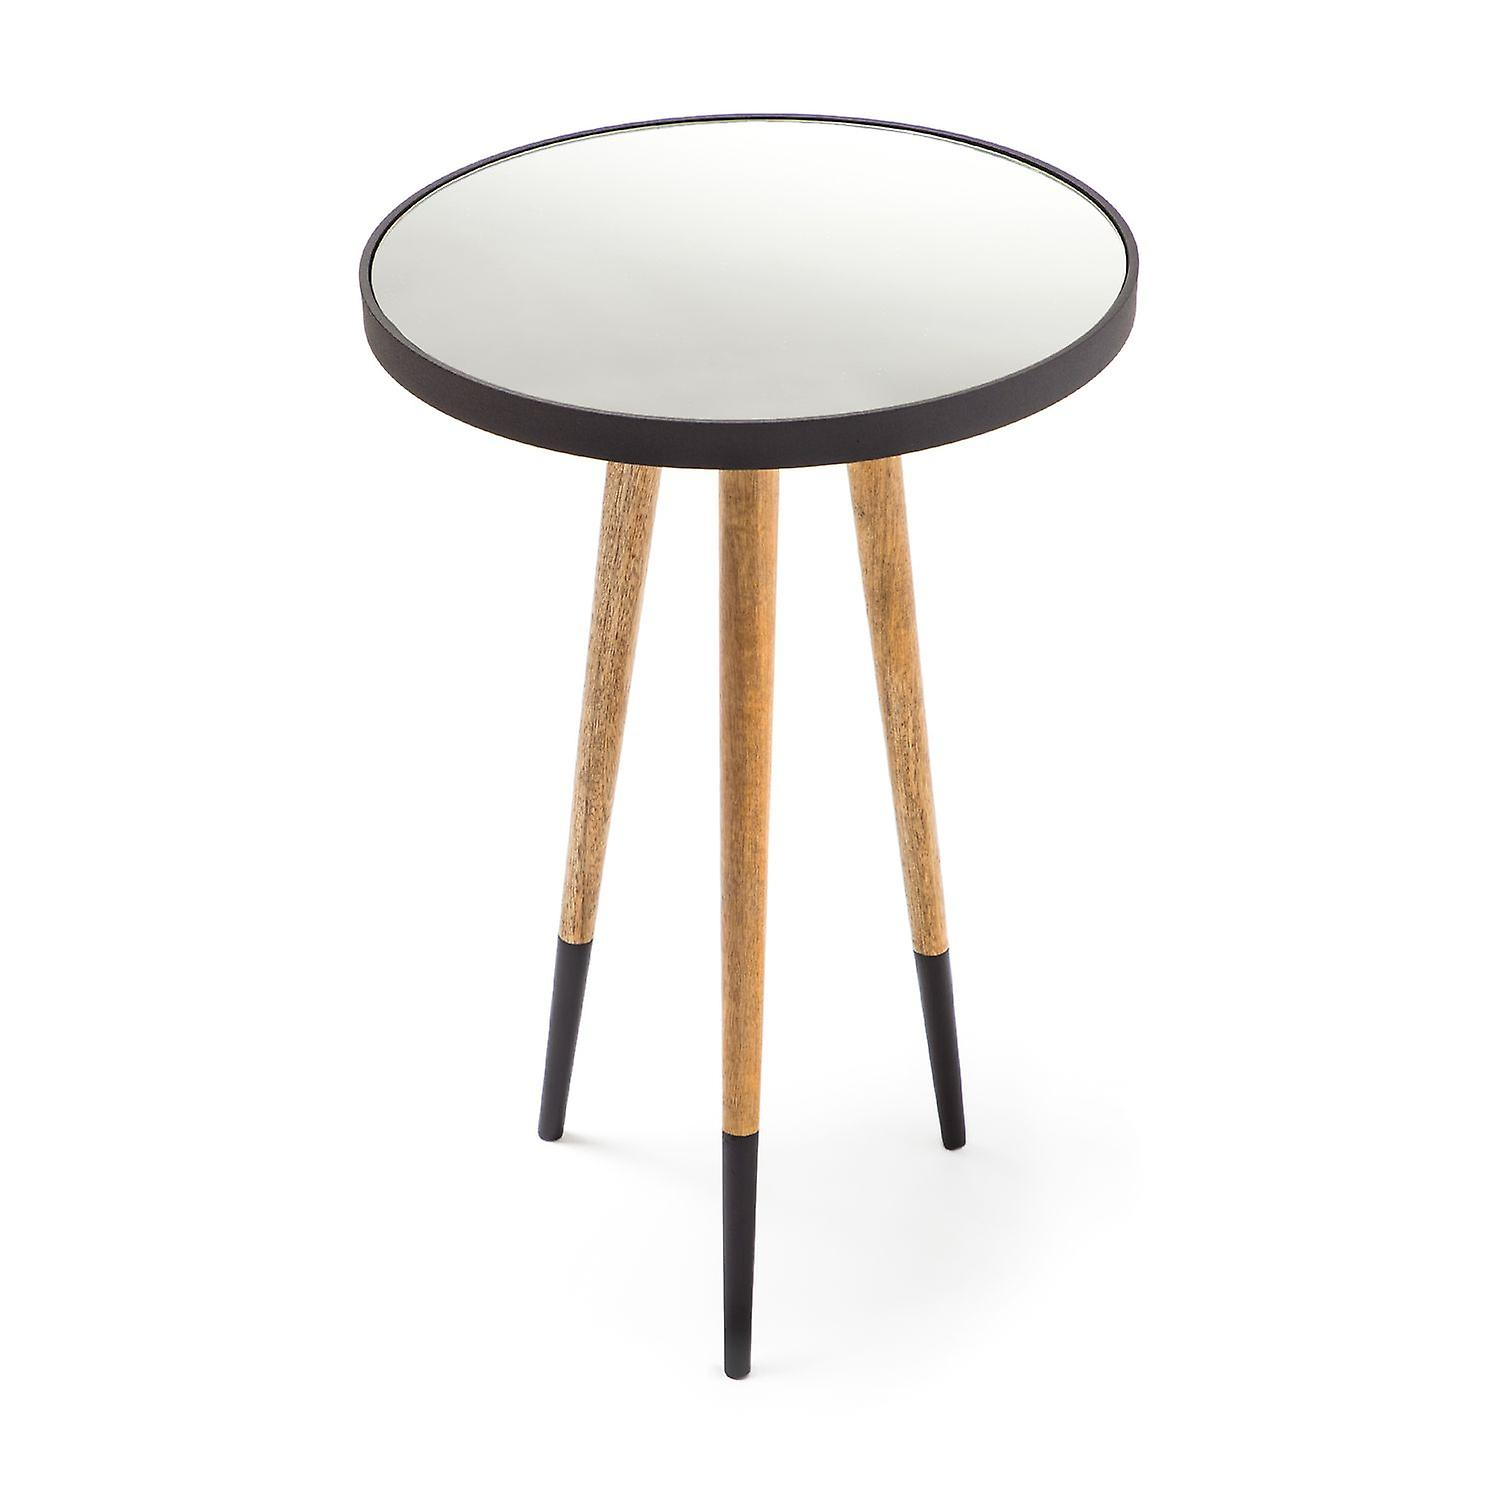 Basse Noir Design Table Salon Naturel kZiuPX